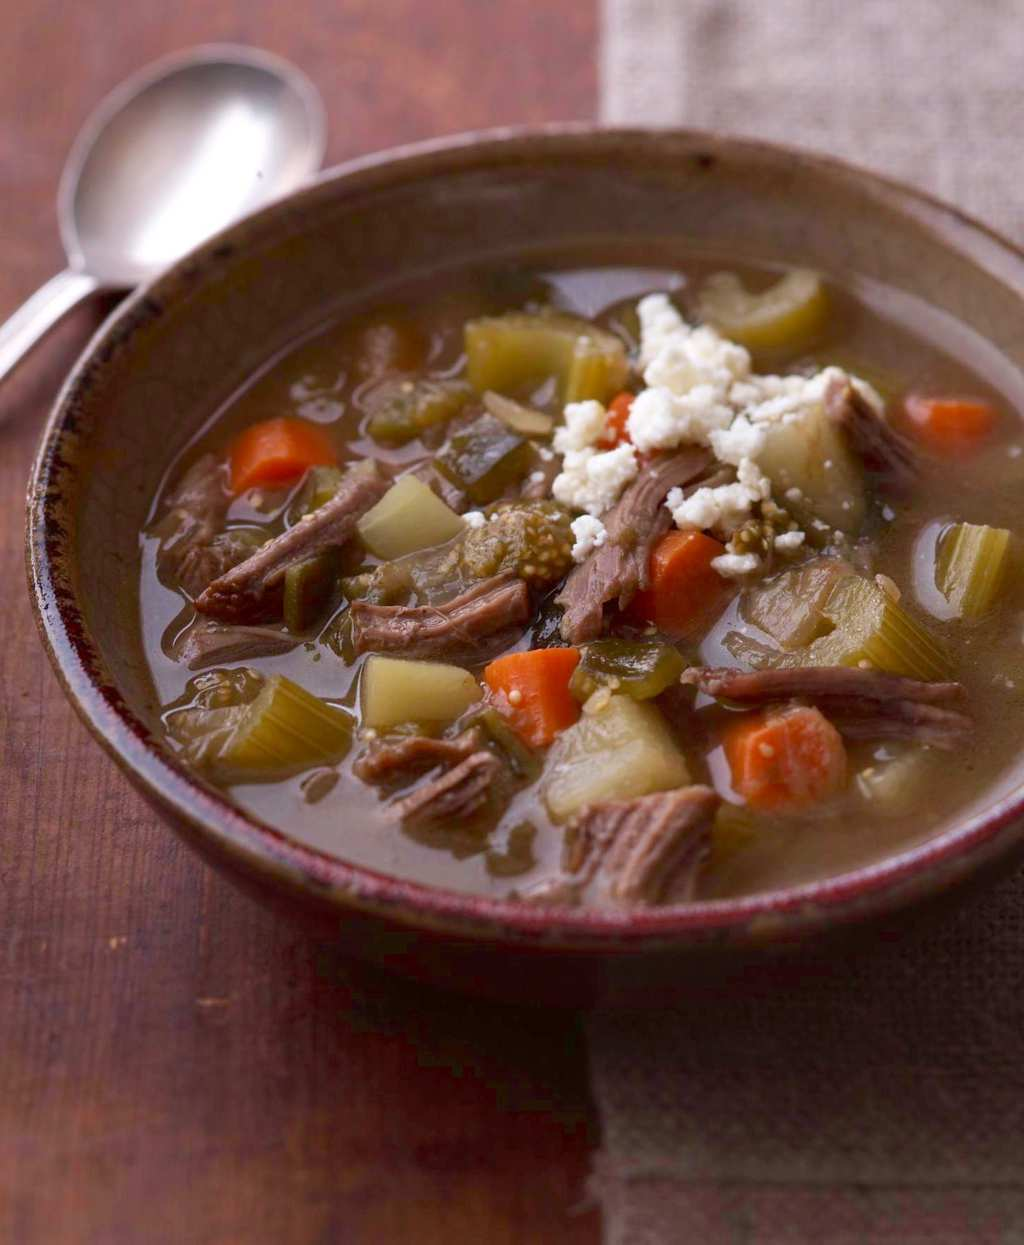 Mexican Tomatillo and Shredded Beef soup in bowl with spoon